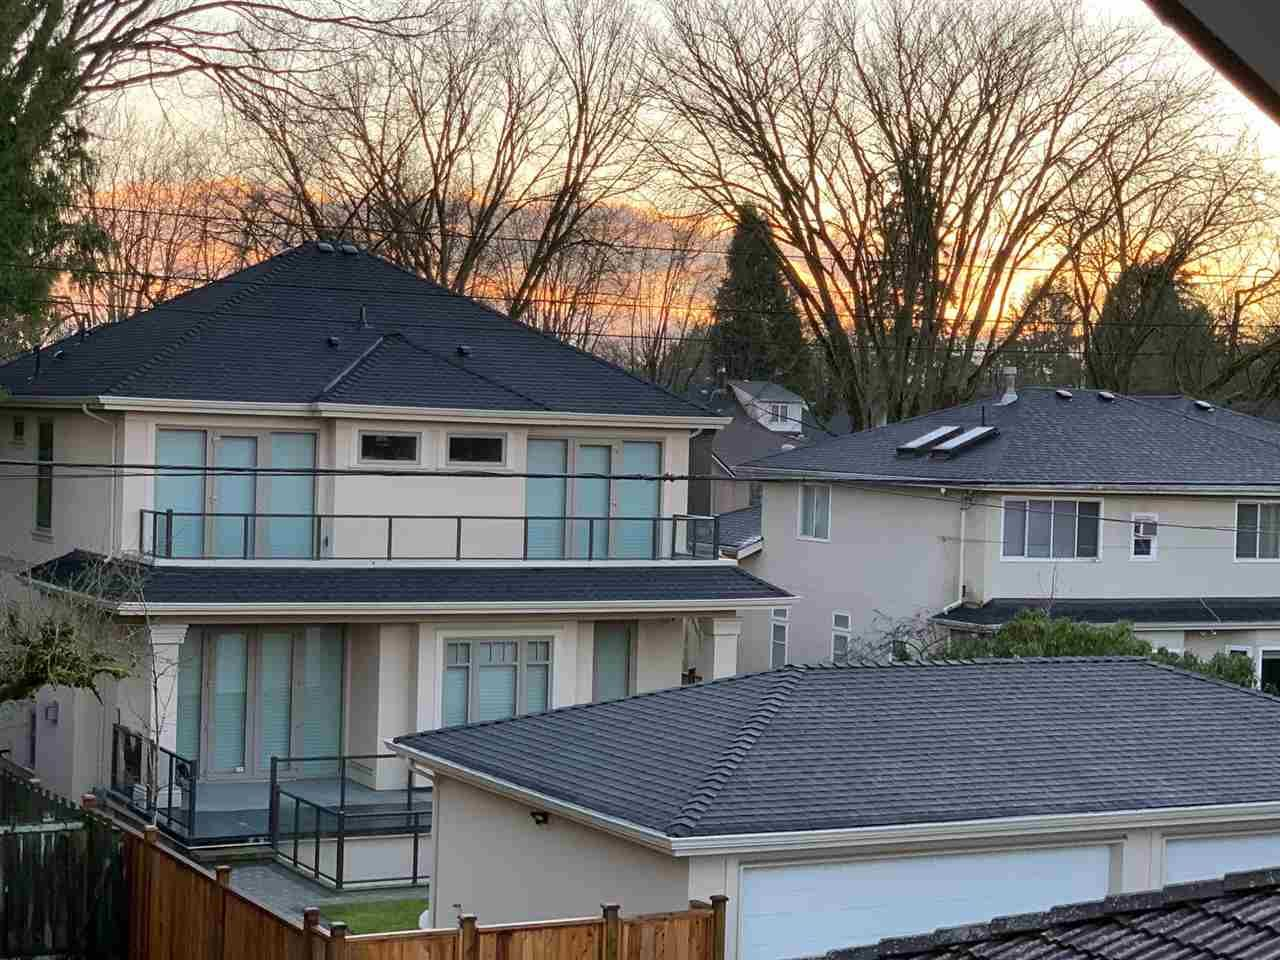 Photo 14: Photos: 2388 W 34 Avenue in Vancouver: Quilchena House for sale (Vancouver West)  : MLS®# R2431261